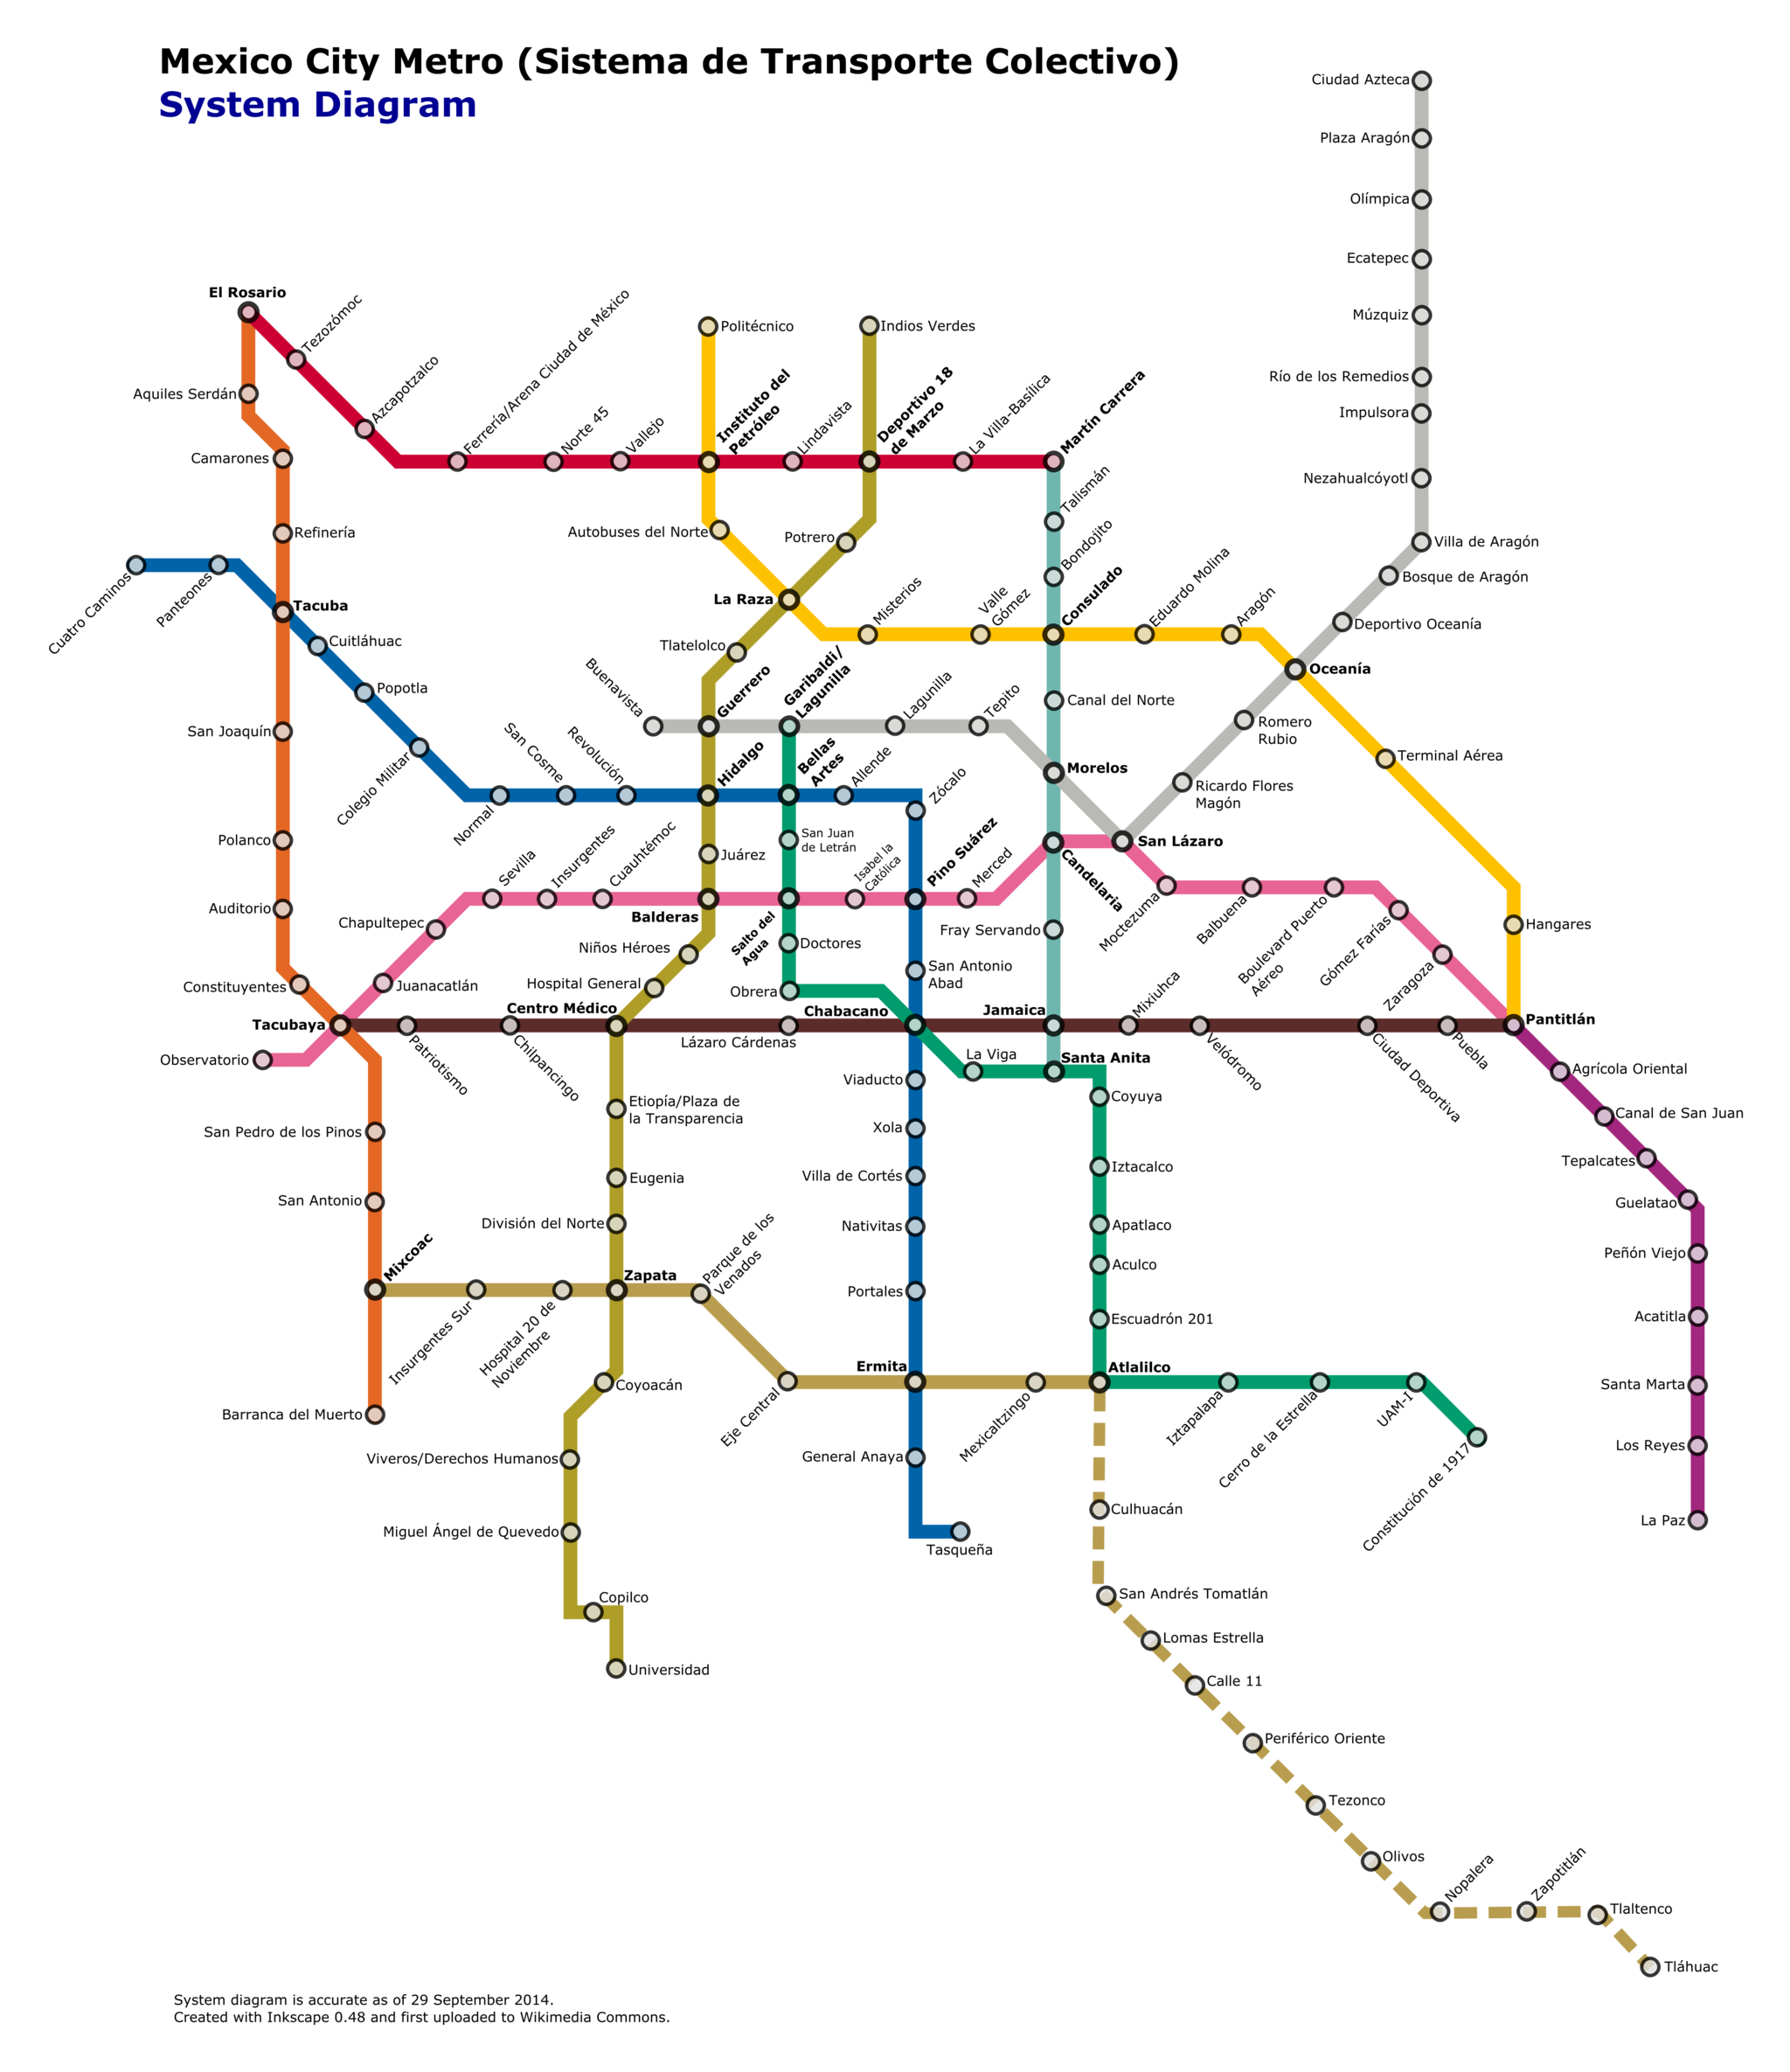 A User's Guide to the Mexico City Public Transport System